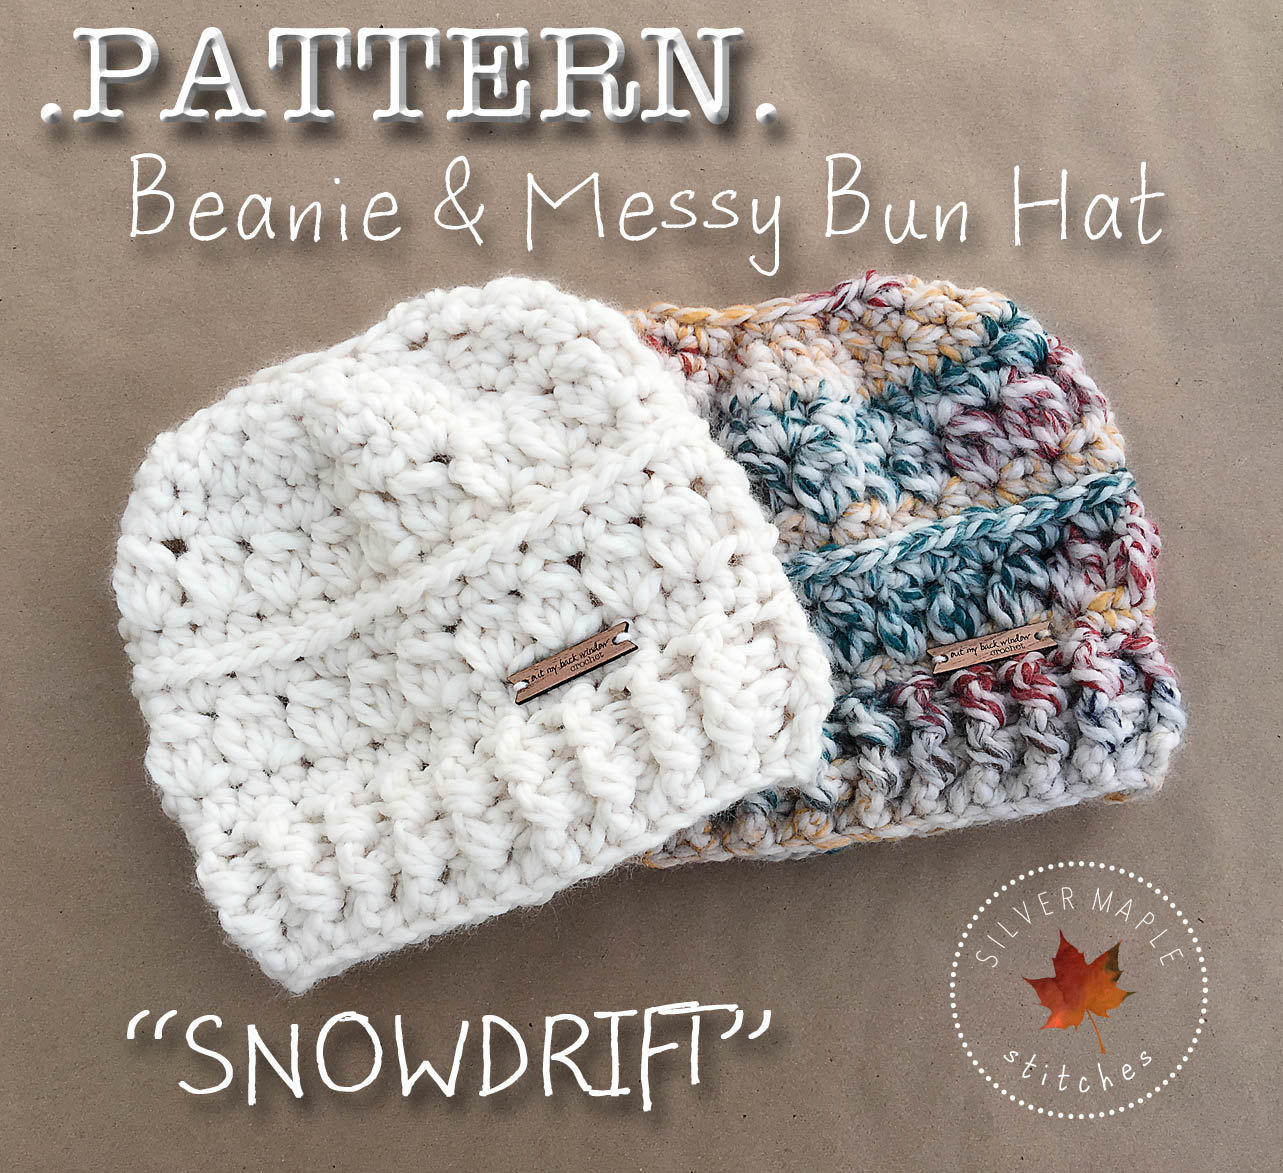 Luxury Messy Bun Hat Pattern Crochet Pattern Crochet Hat Pattern Messy Bun Beanie Crochet Pattern Of Adorable 45 Pics Messy Bun Beanie Crochet Pattern